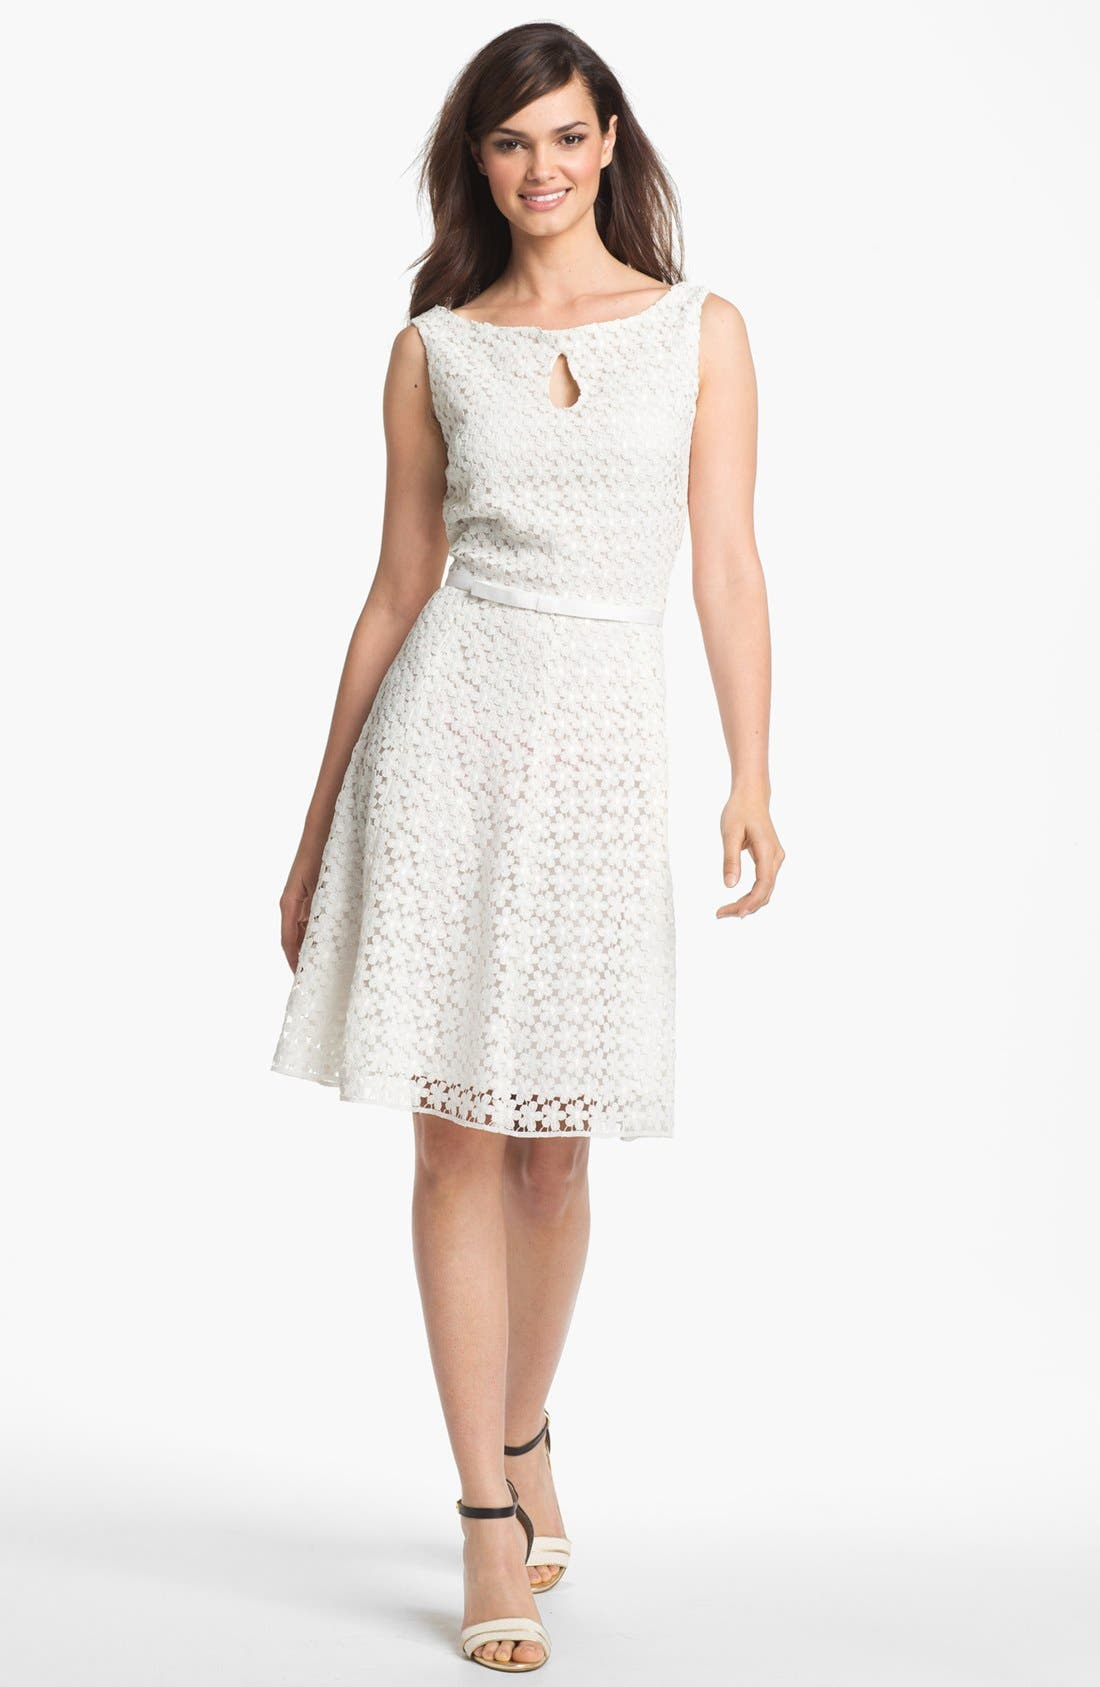 Main Image - Taylor Dresses Lace Fit & Flare Dress